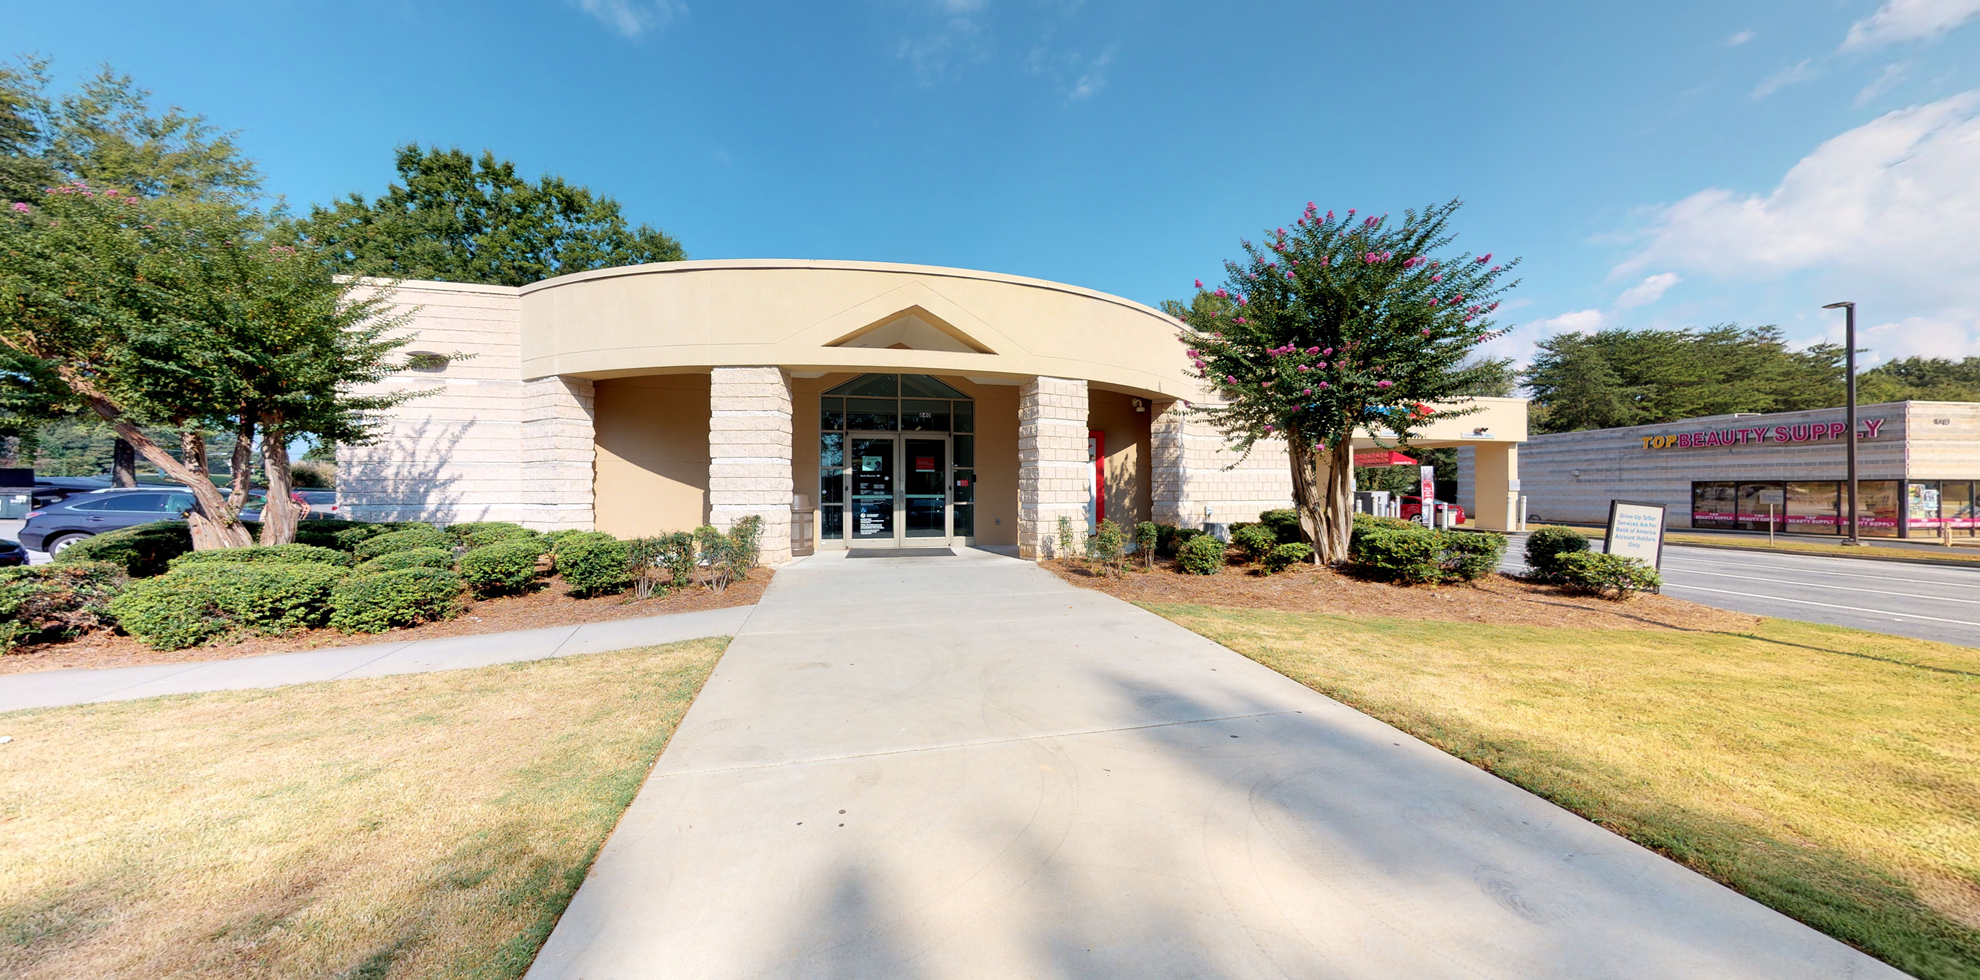 Bank of America financial center with drive-thru ATM | 840 Oak Rd, Lawrenceville, GA 30044